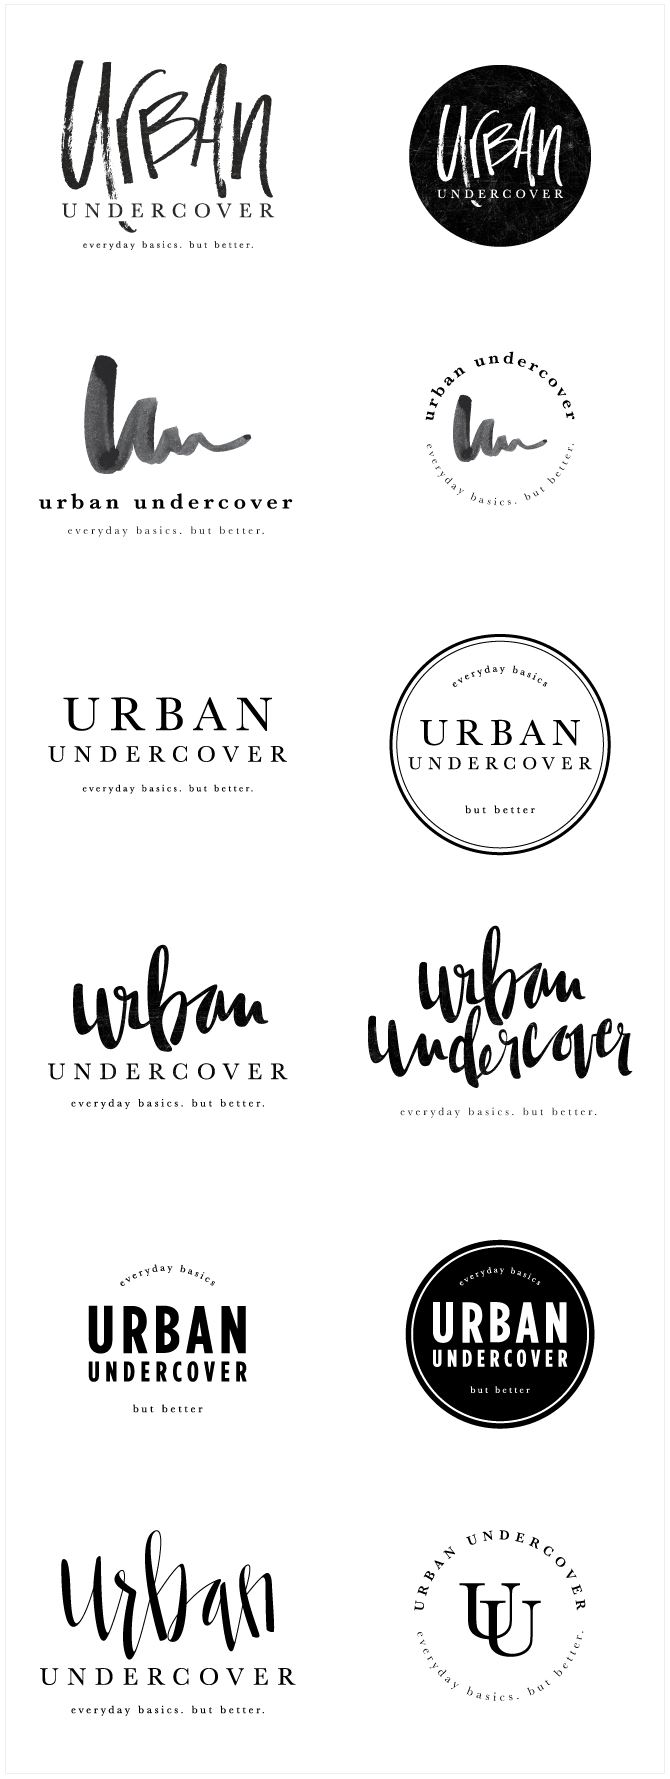 UrbanUndercoverBrandConcepts